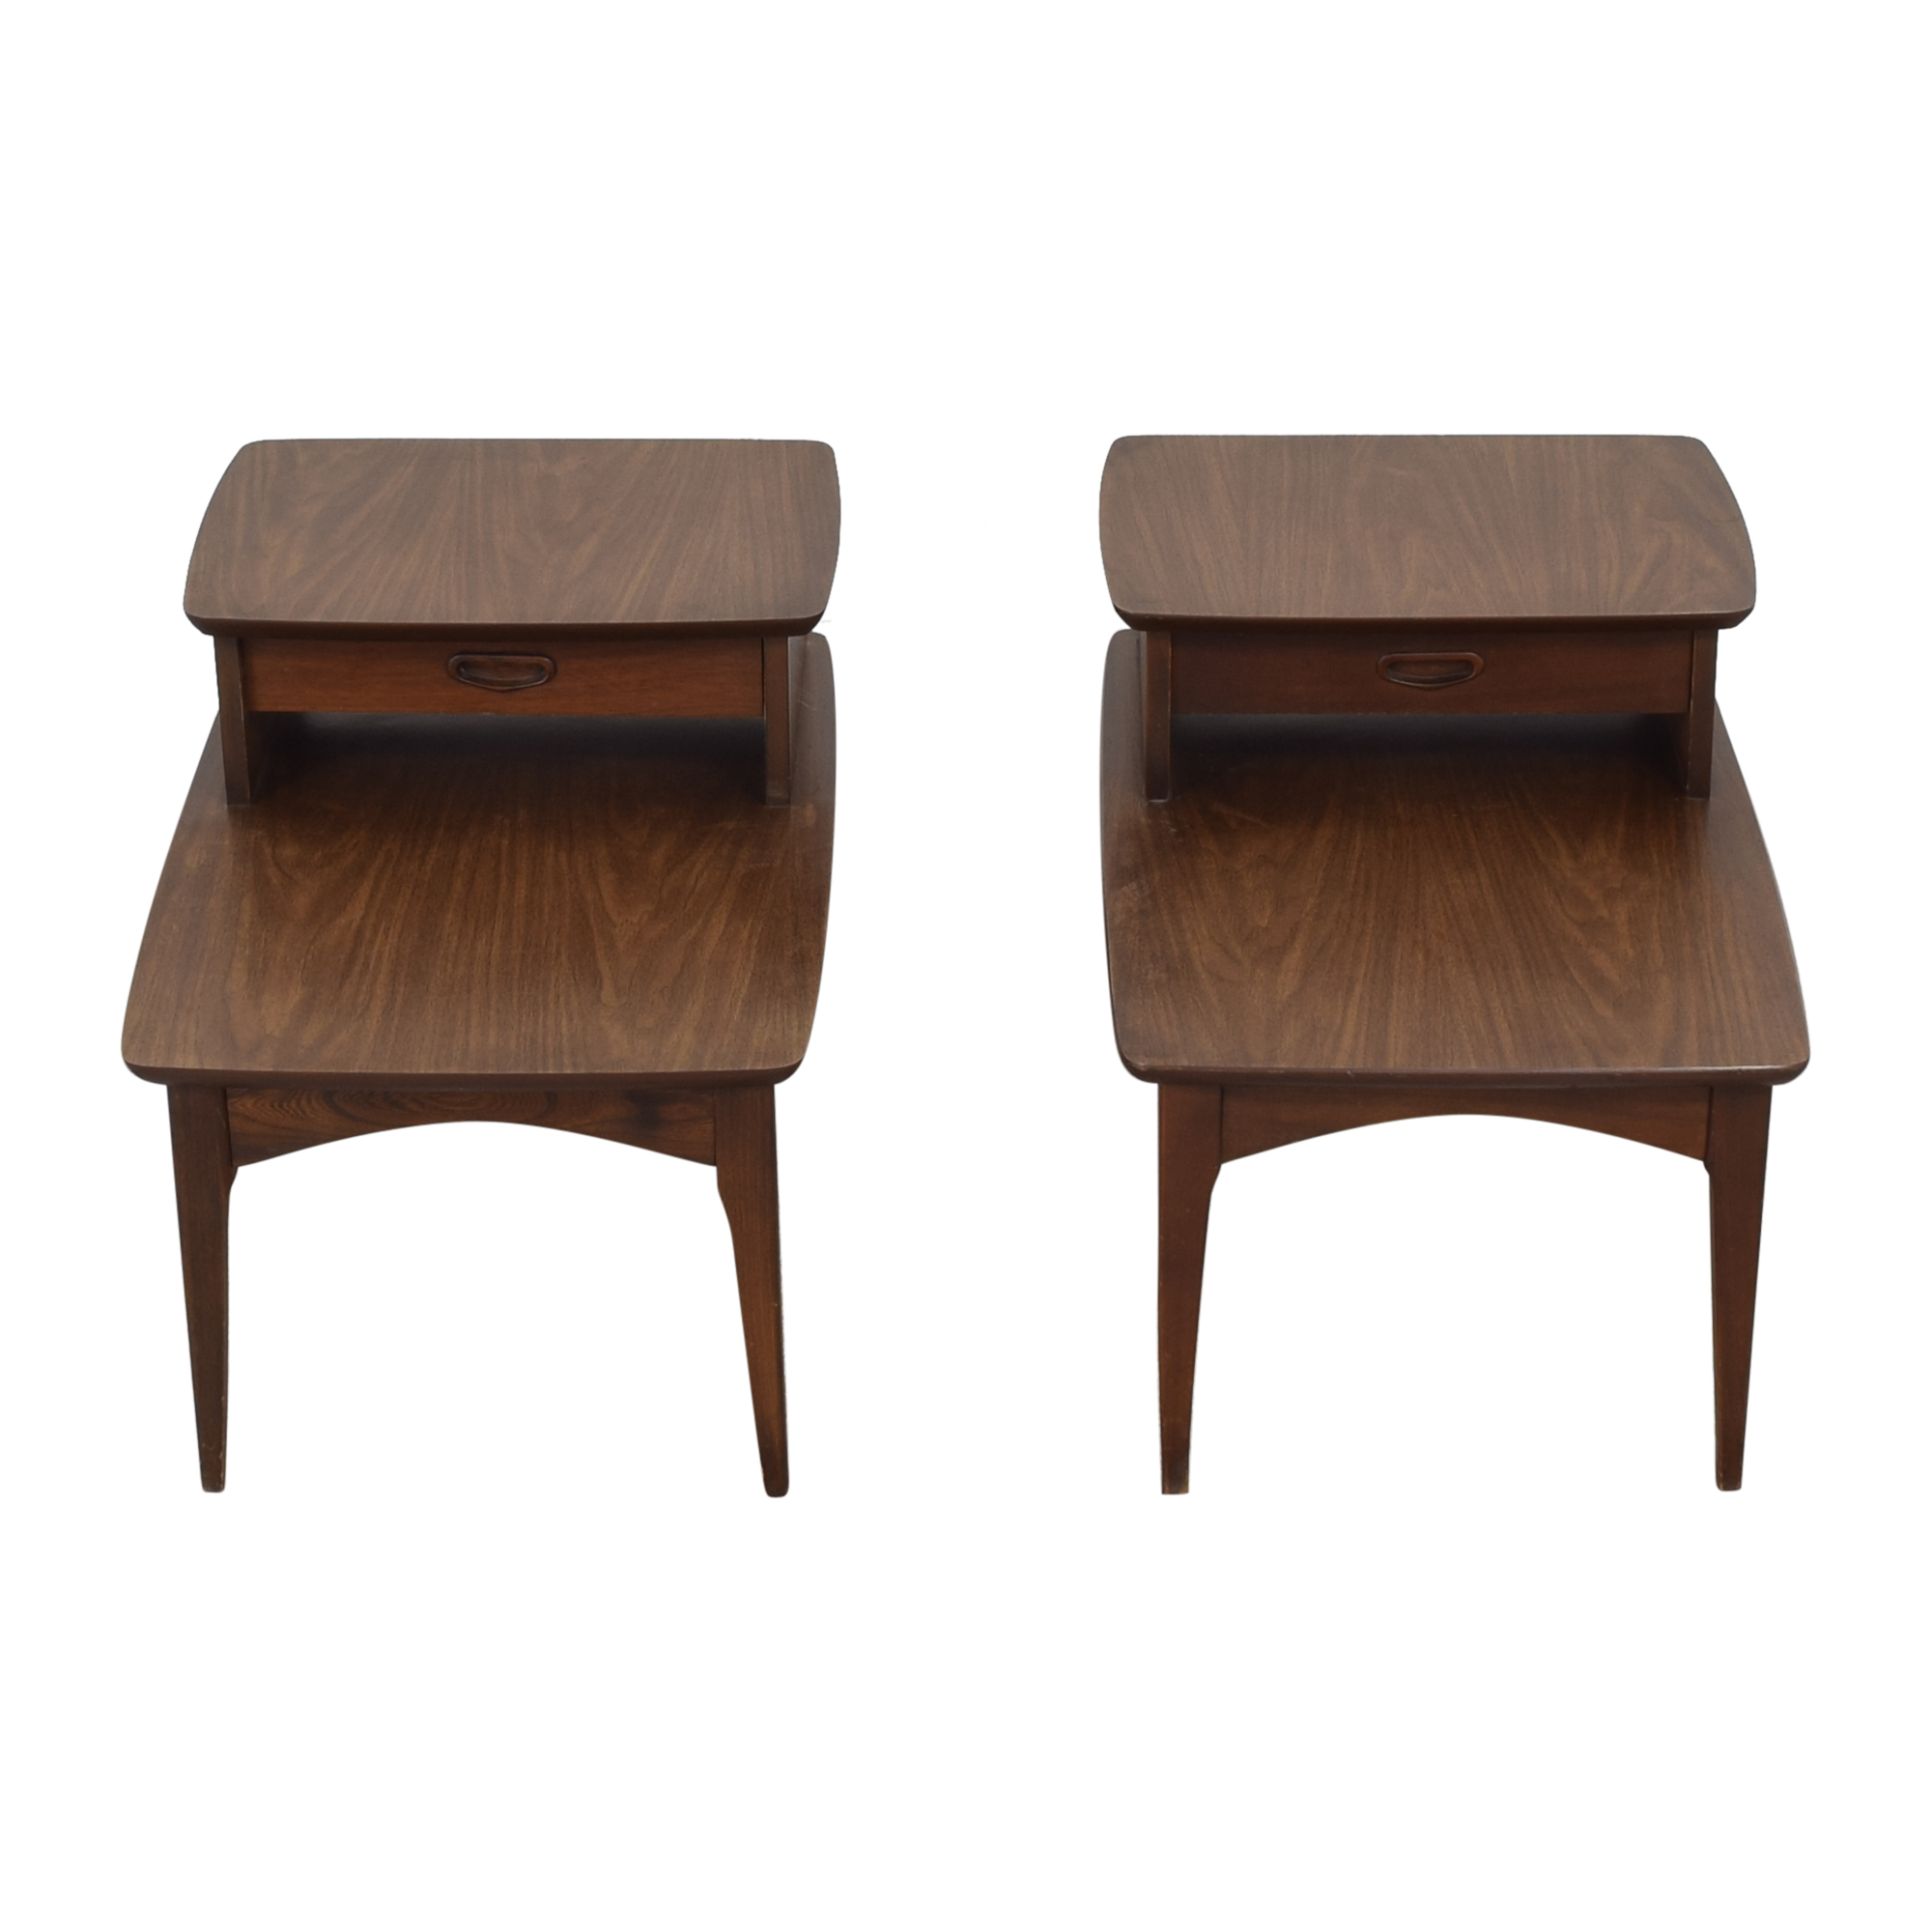 81 Off Mid Century Modern Side Tables Tables